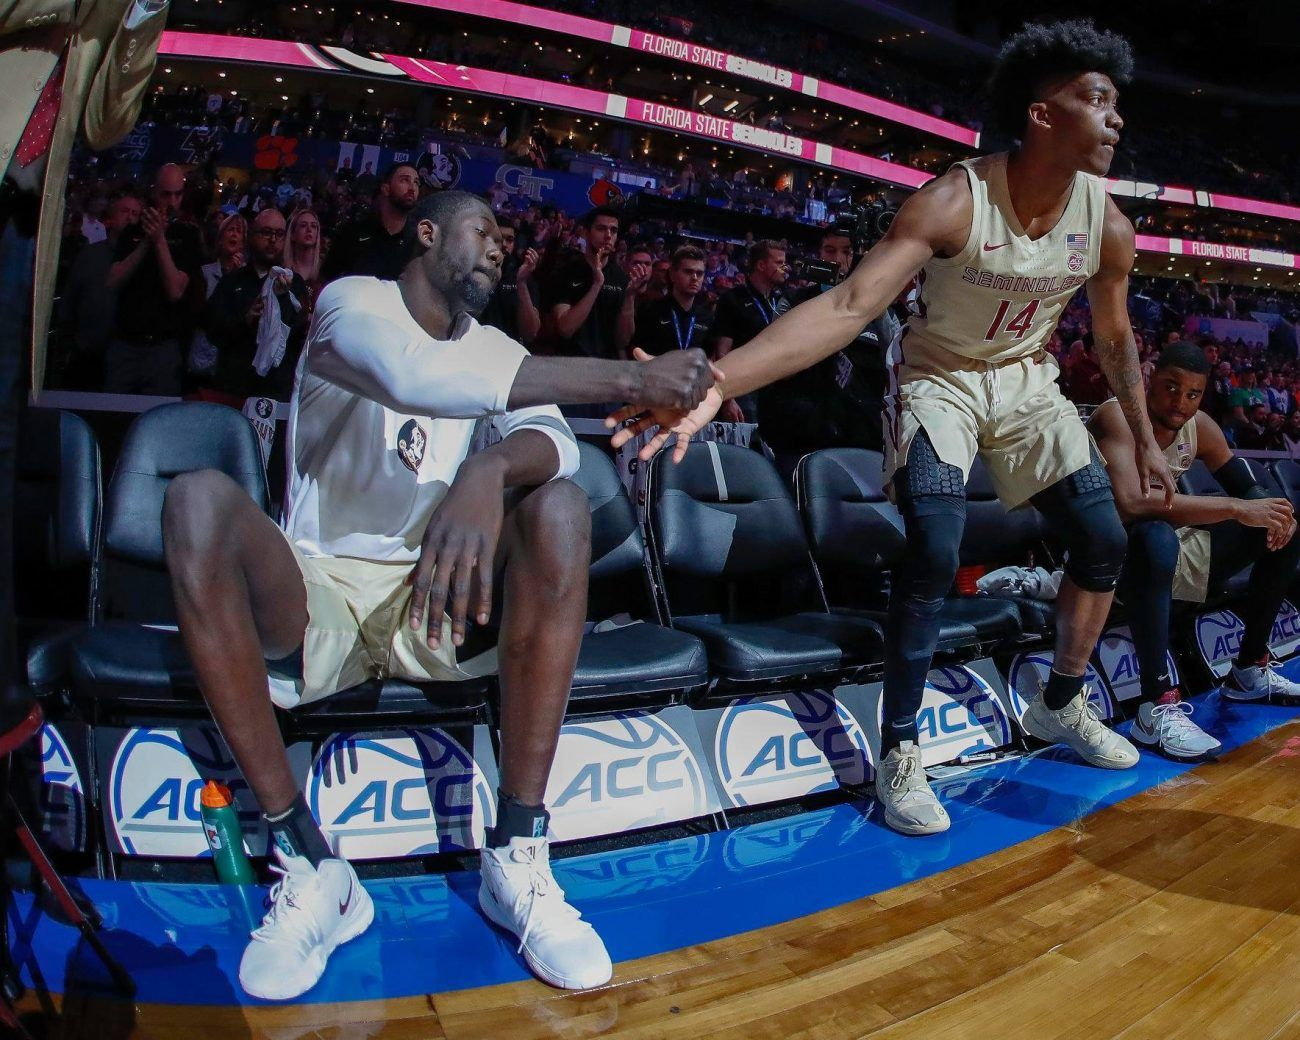 Preview What FSU Looks Like Heading Into the Tournament